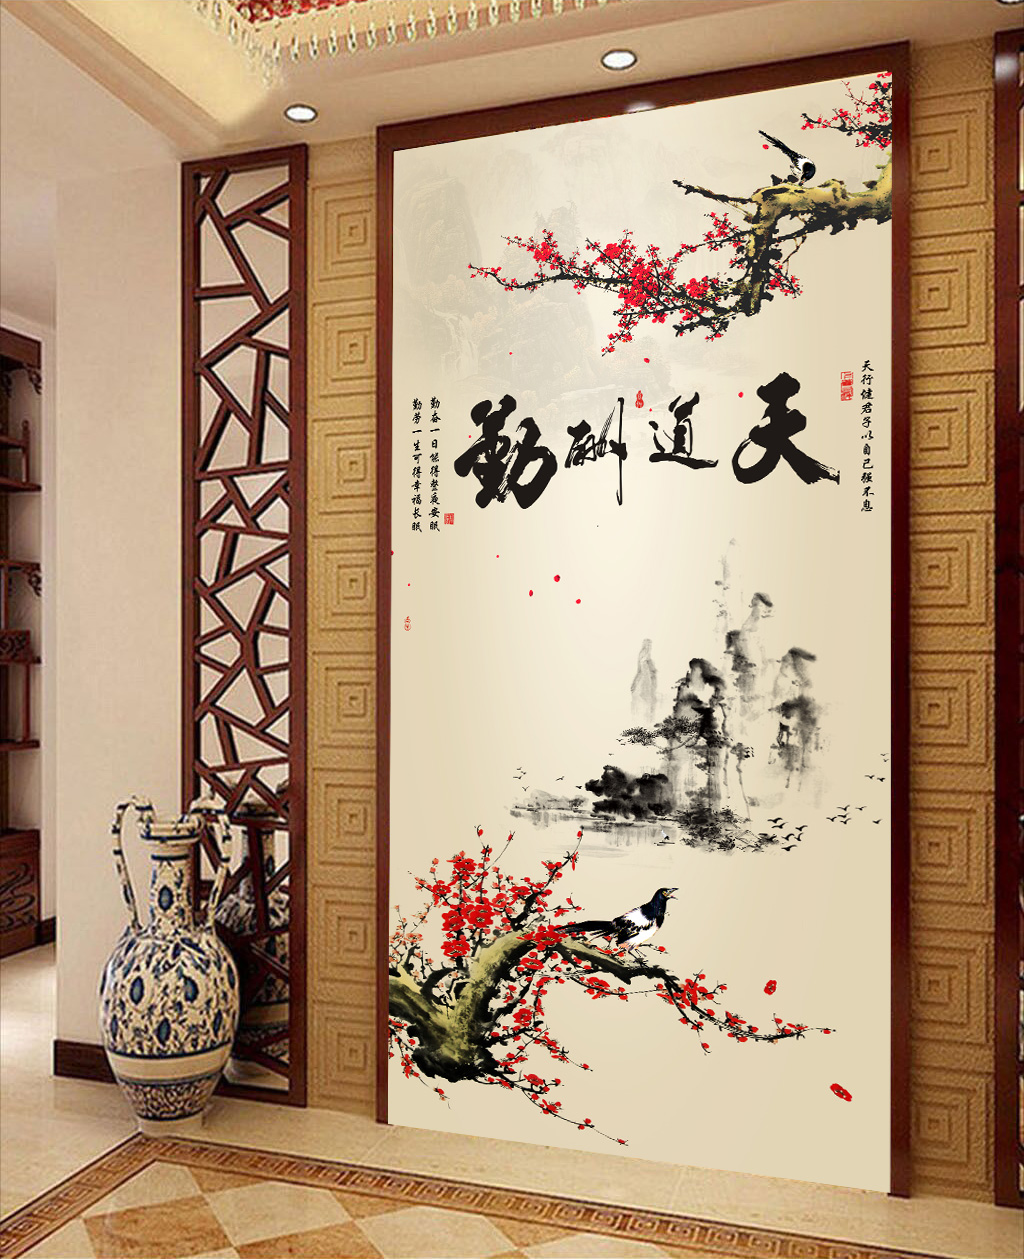 Peace of mind chinese custom entrance hallway living room dining room den bedroom wall sticker home decor klimts sika